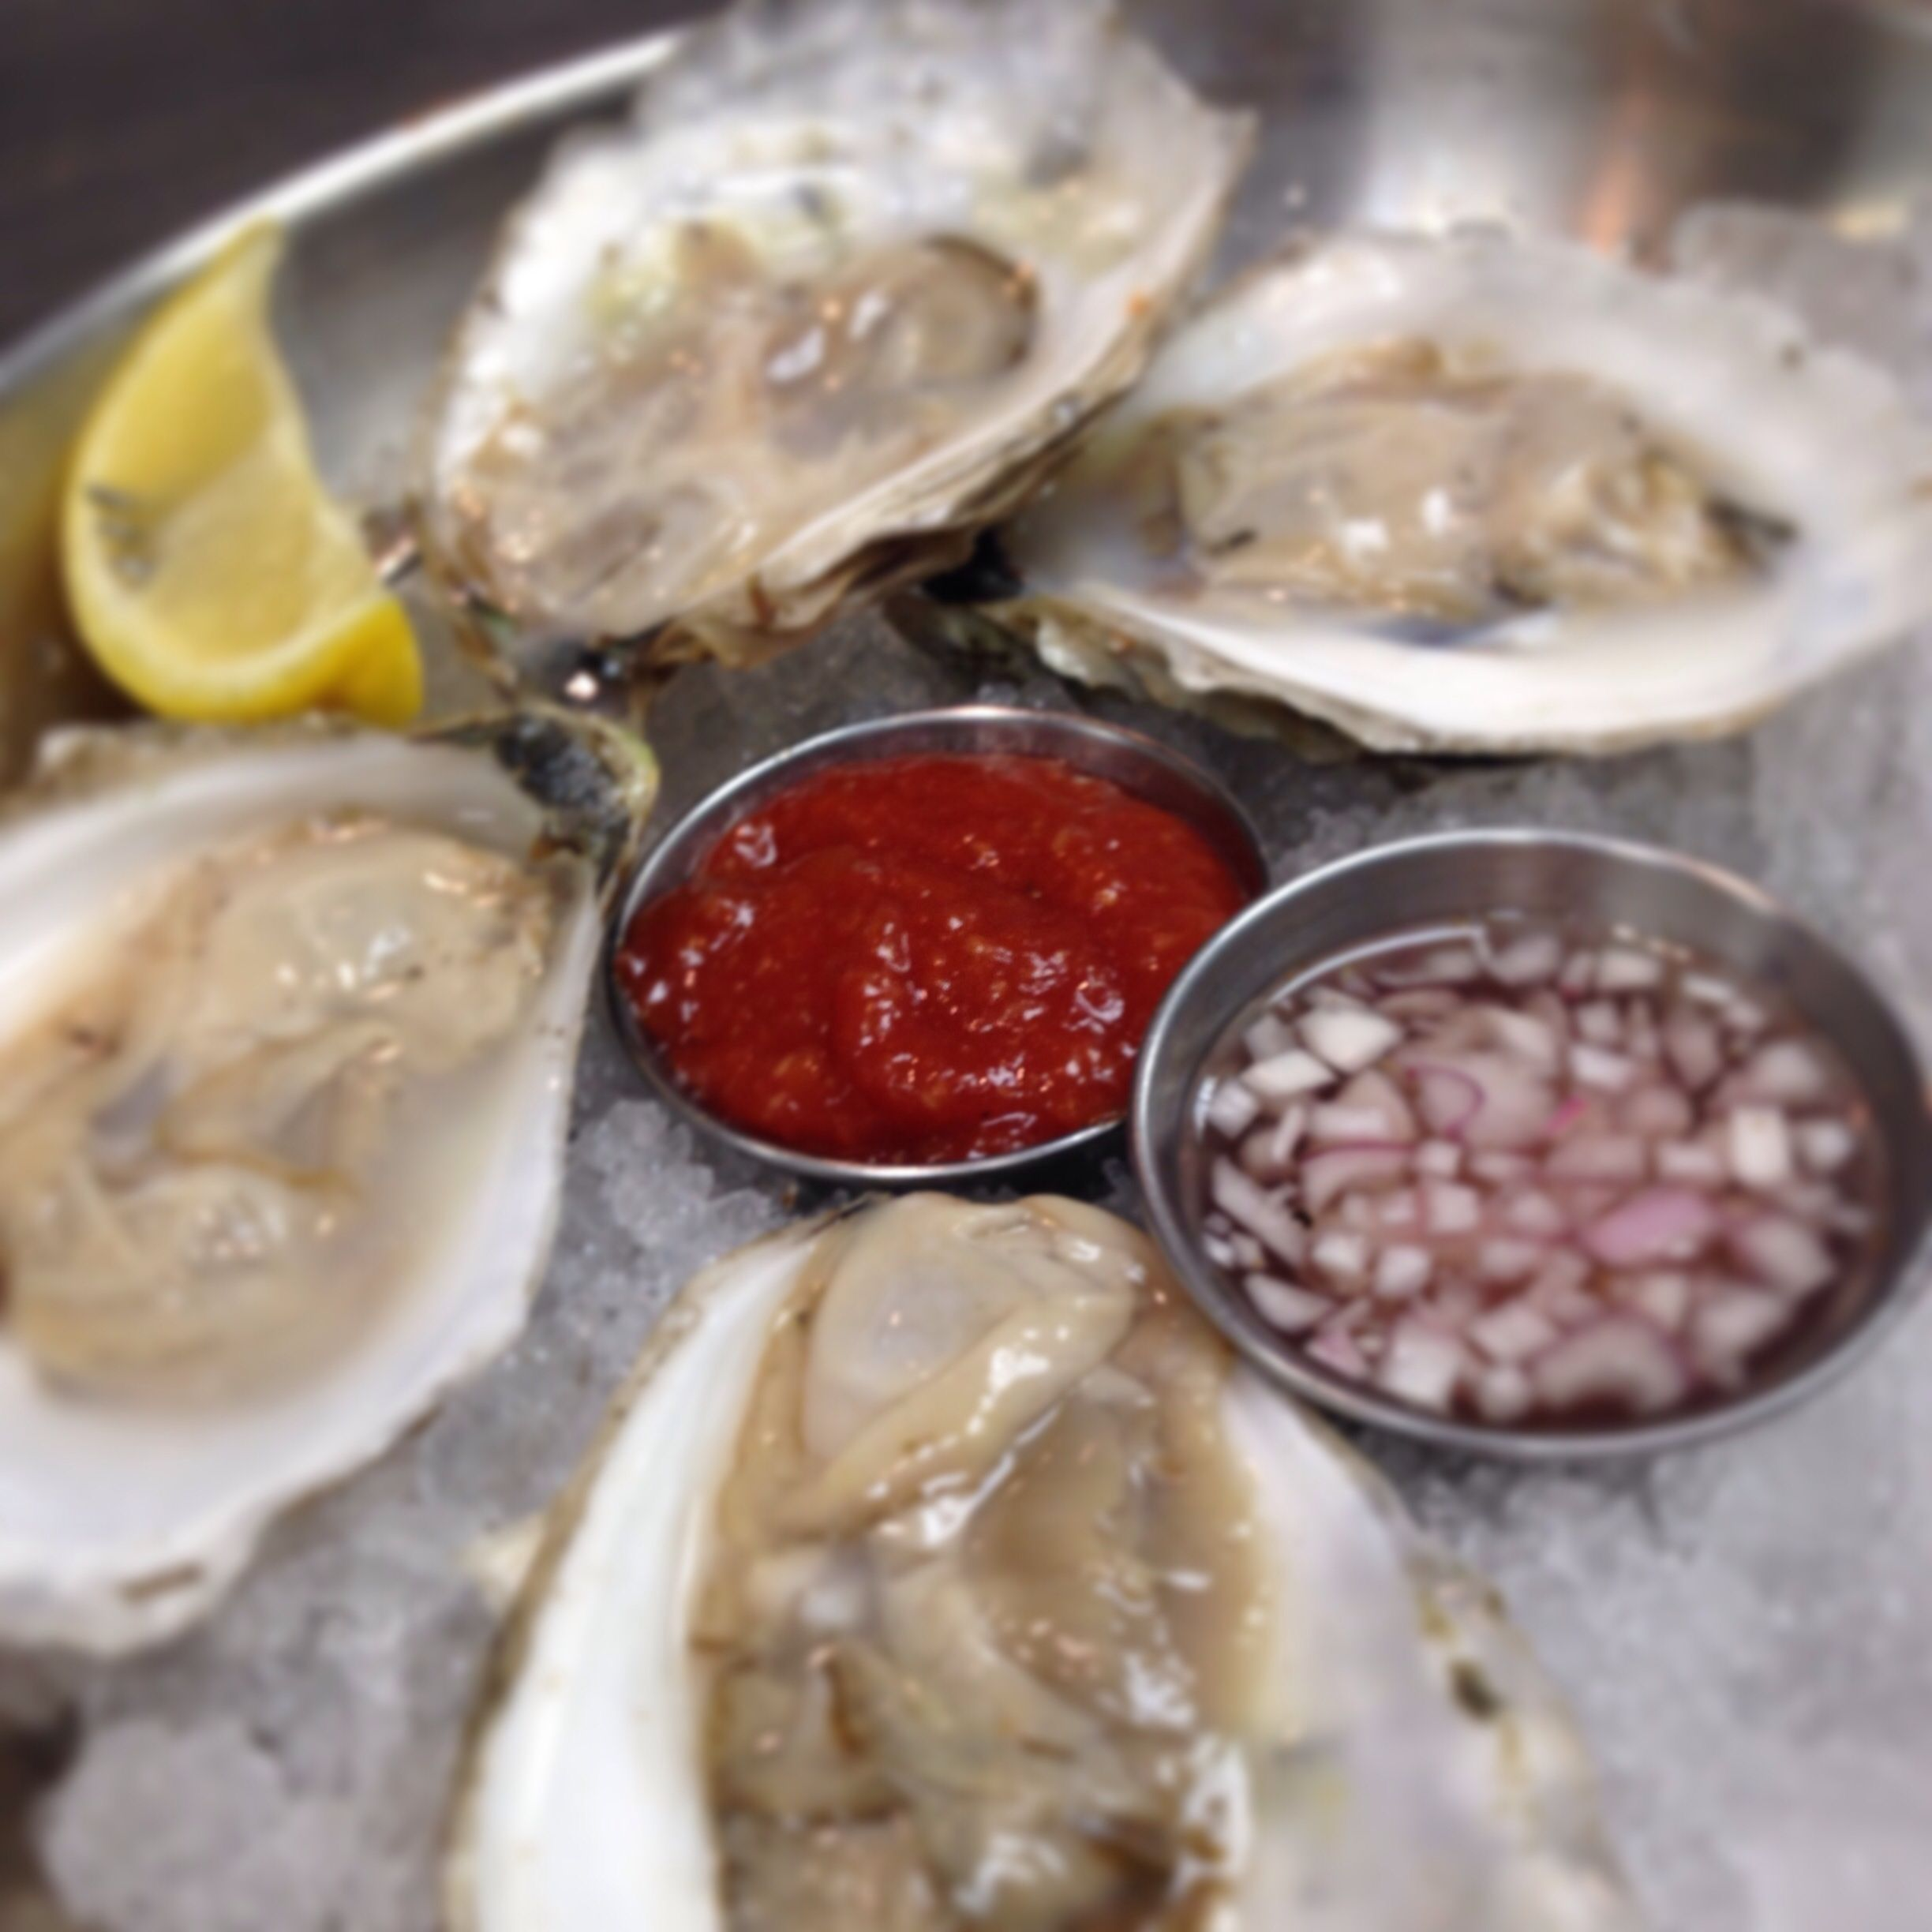 Getting ready for tonight's special menu for pre-valentines day @burtonsgrill @Derby Street Shoppes #burtonsgrill #oyster @Island Creek  #local #dinner #shellfish #restaurant #fresh #seafood #valentinesday #hingham @hinghampatch